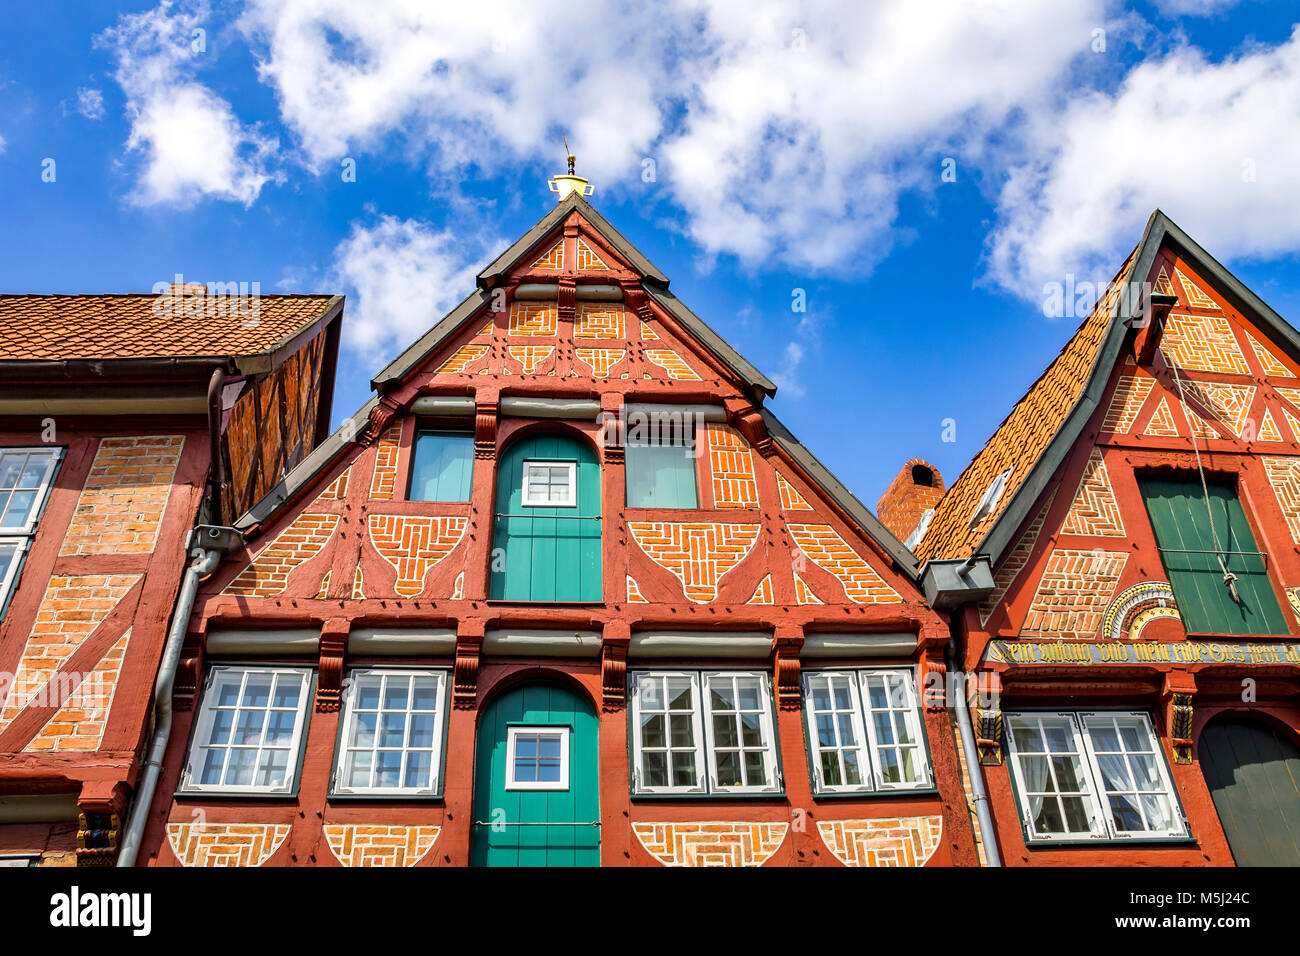 Germany,  Lower Saxony, Lueneburg, Old town, Gable house - Stock Image